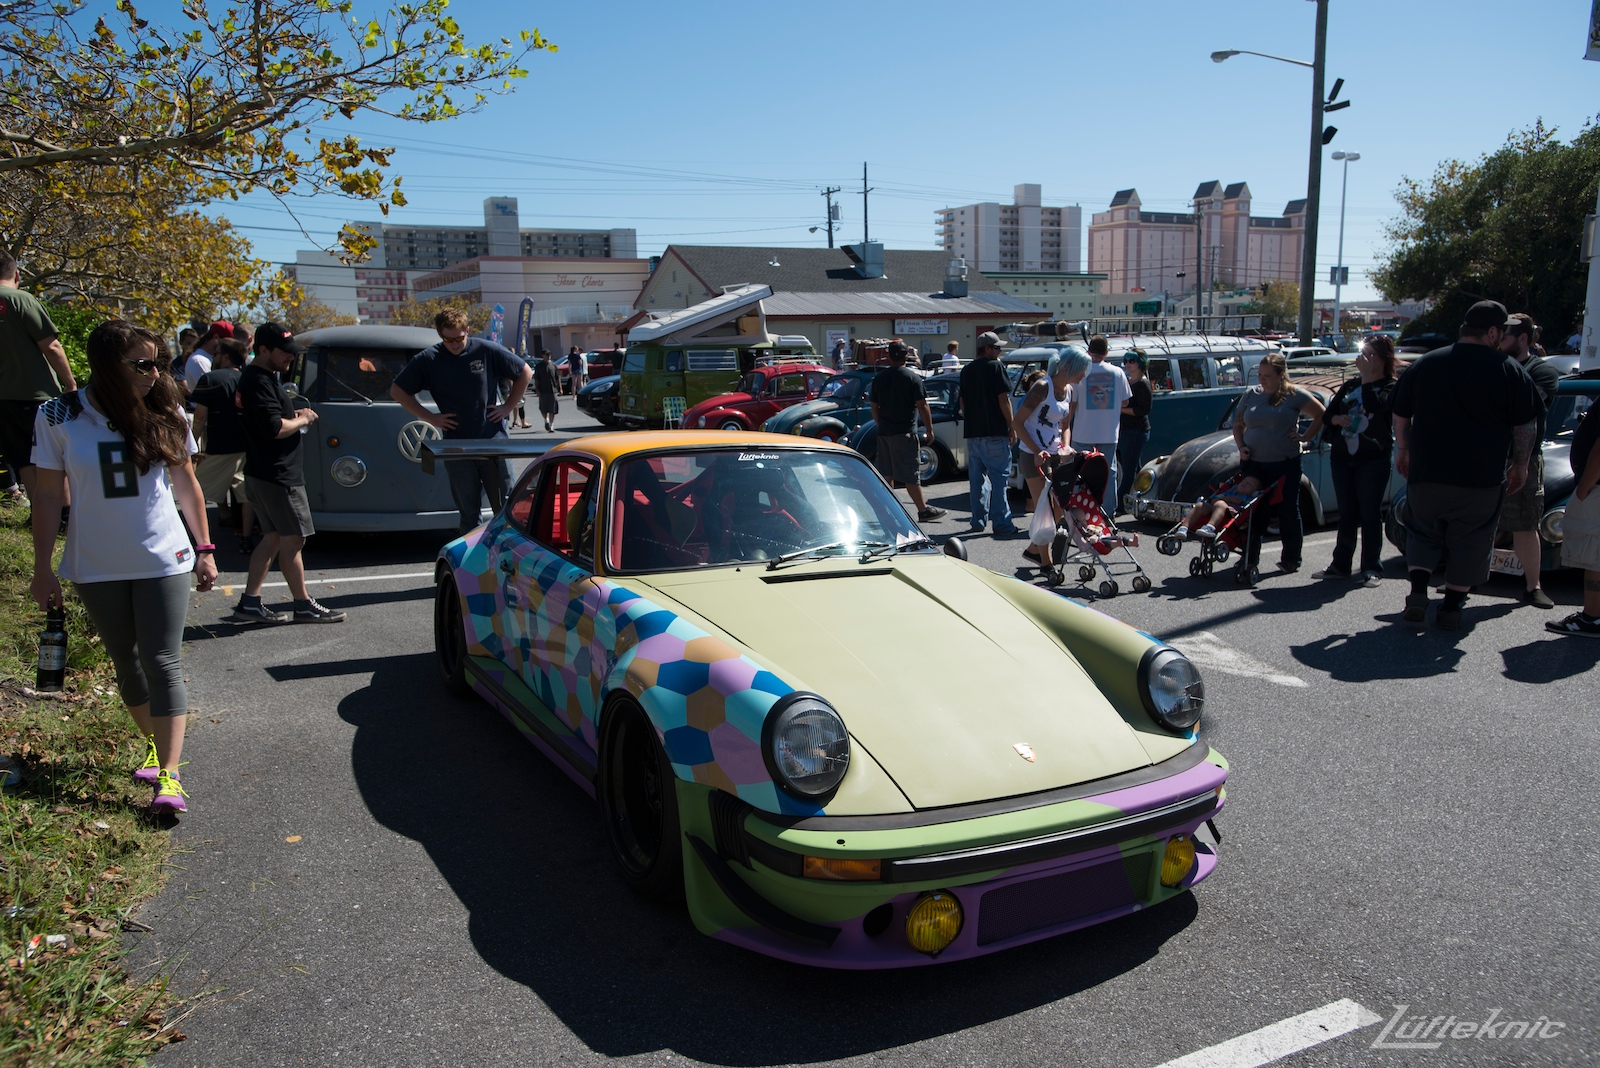 The Lüfteknic #projectstuka Porsche 930 Turbo at a get together at h2oi with bystanders taking in the car.